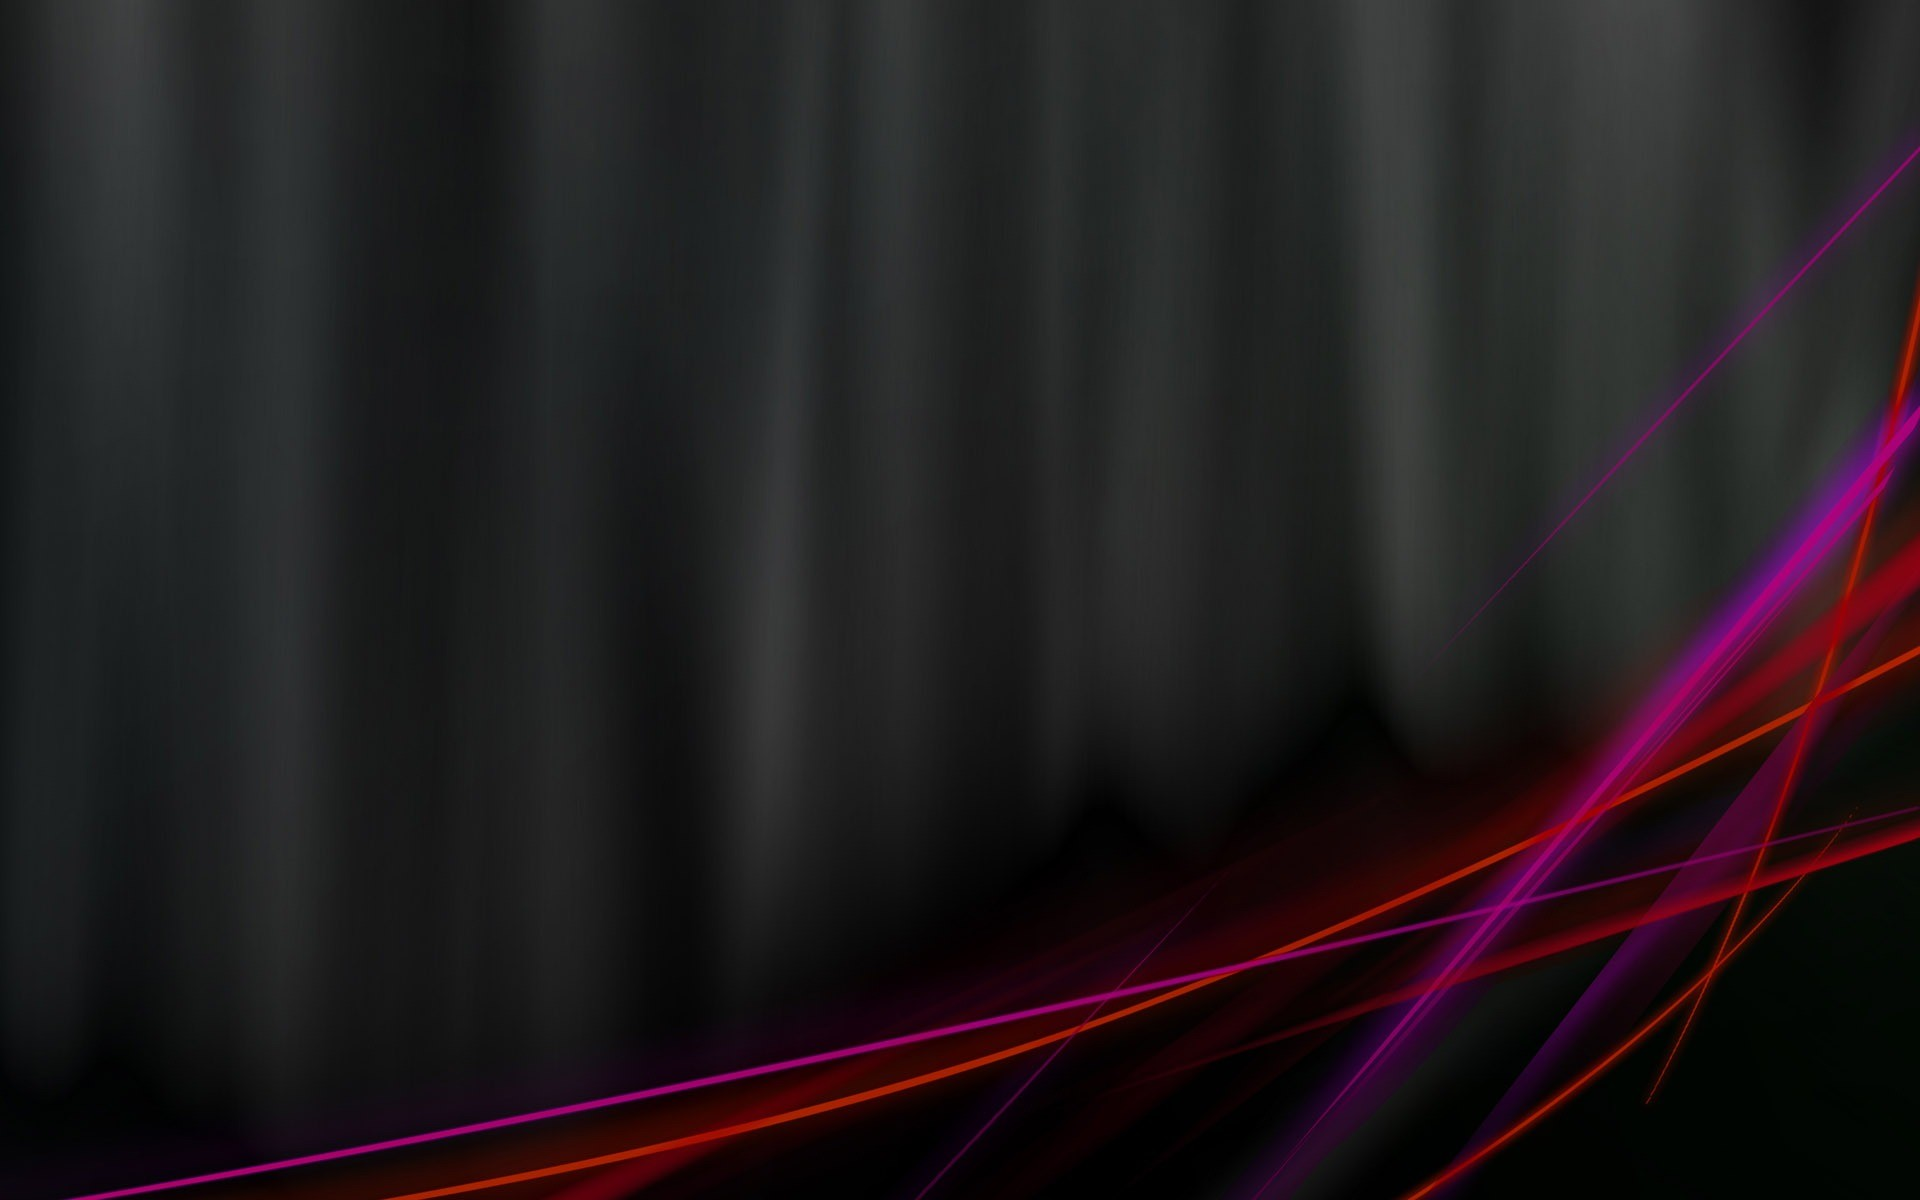 1920x1200 Red and purple curves HD Wallpaper 1920x1080 Red and purple curves HD .